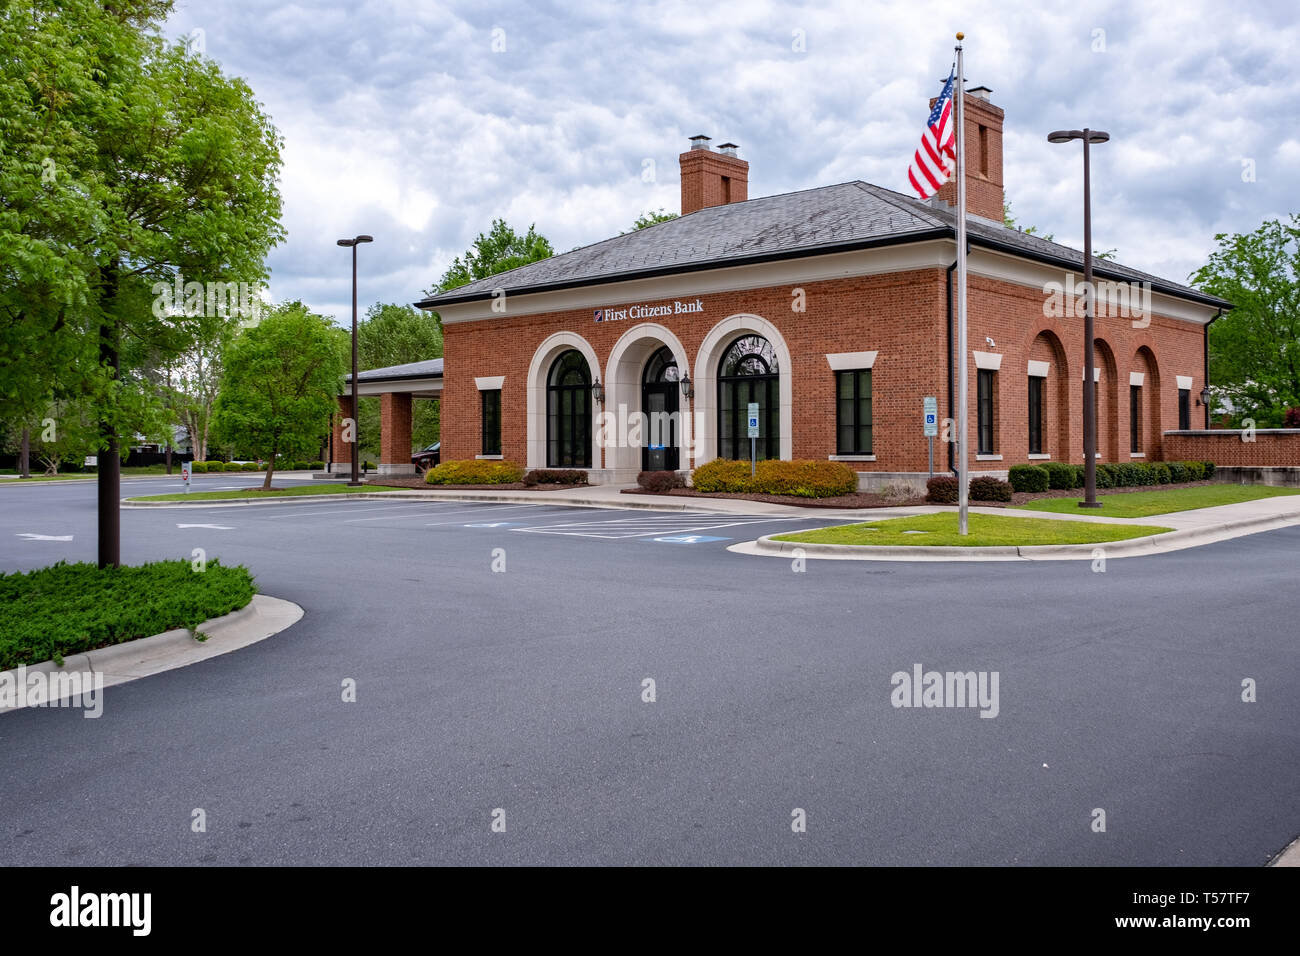 HOPE MILLS, NC - CIRCA April 2019: First Citizens Bank Main Street Stock Photo